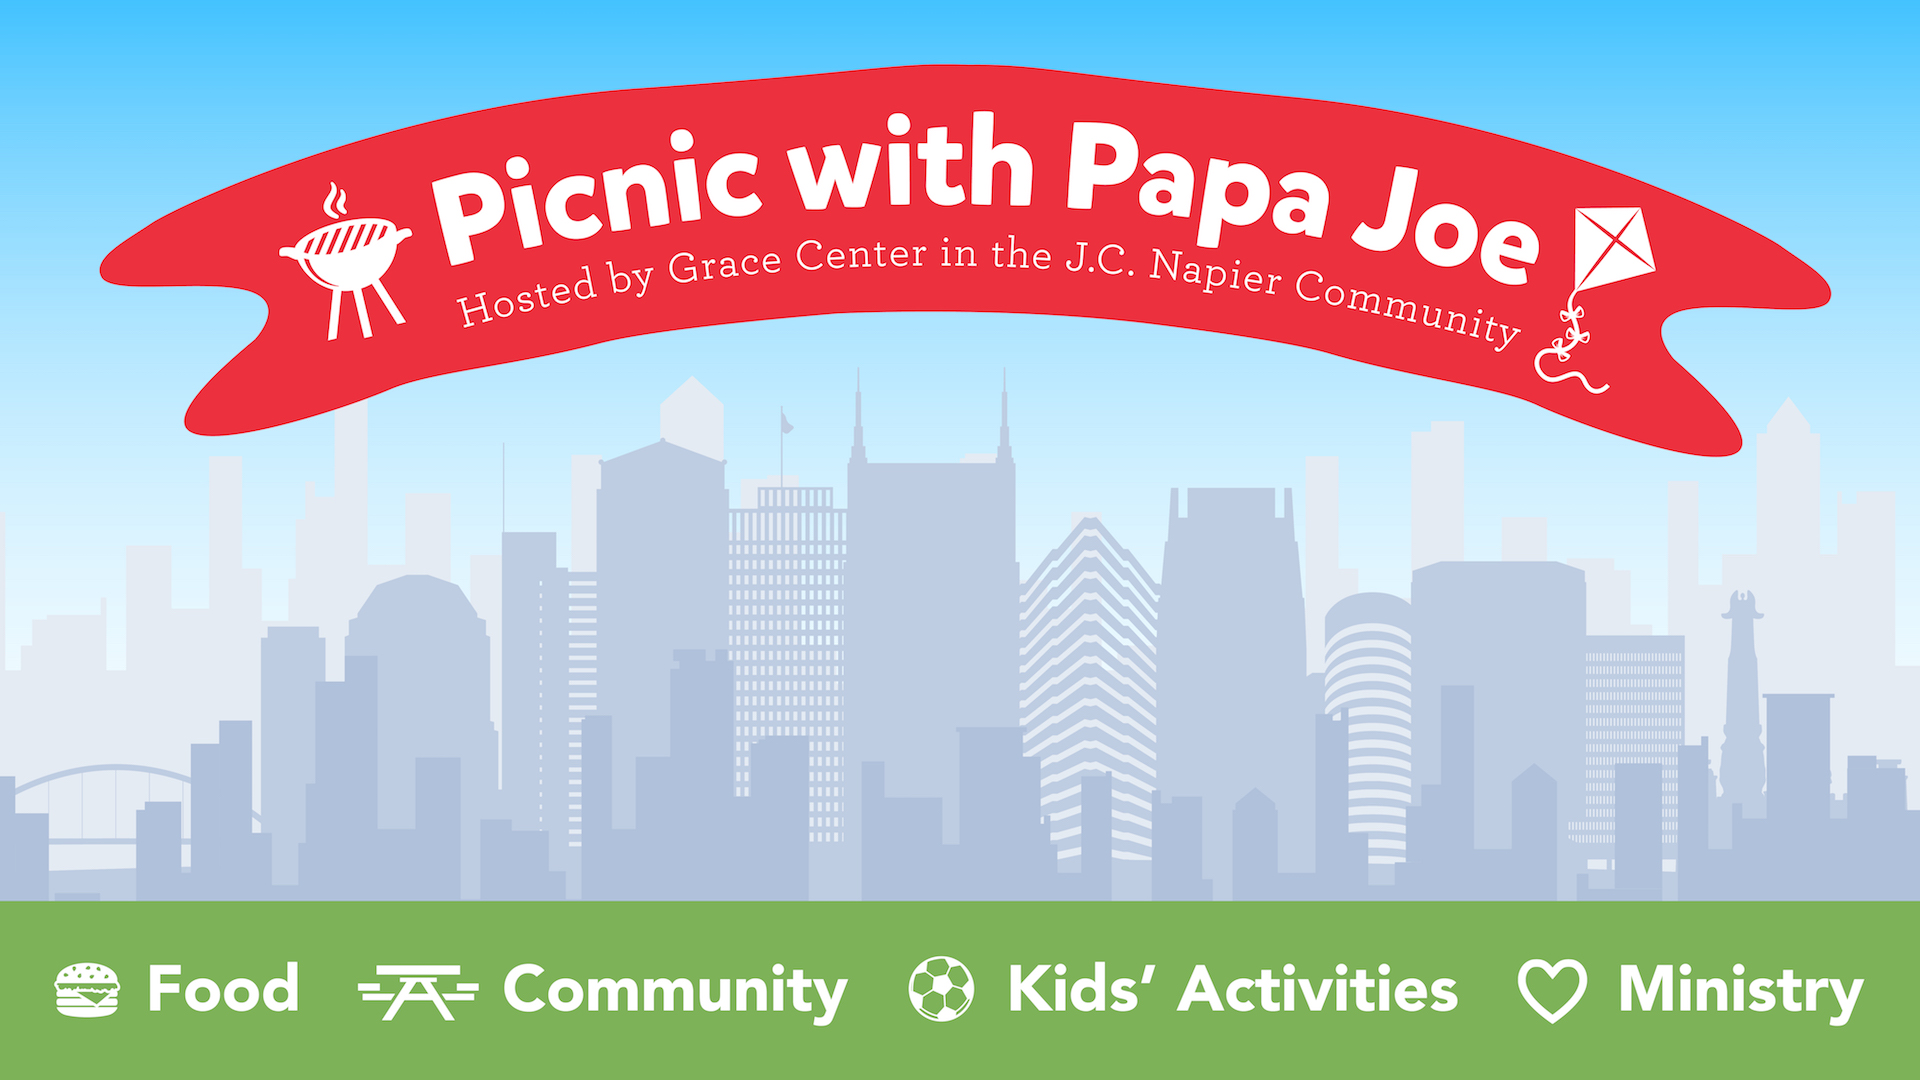 Picnic with Papa Joe-Overview.jpg